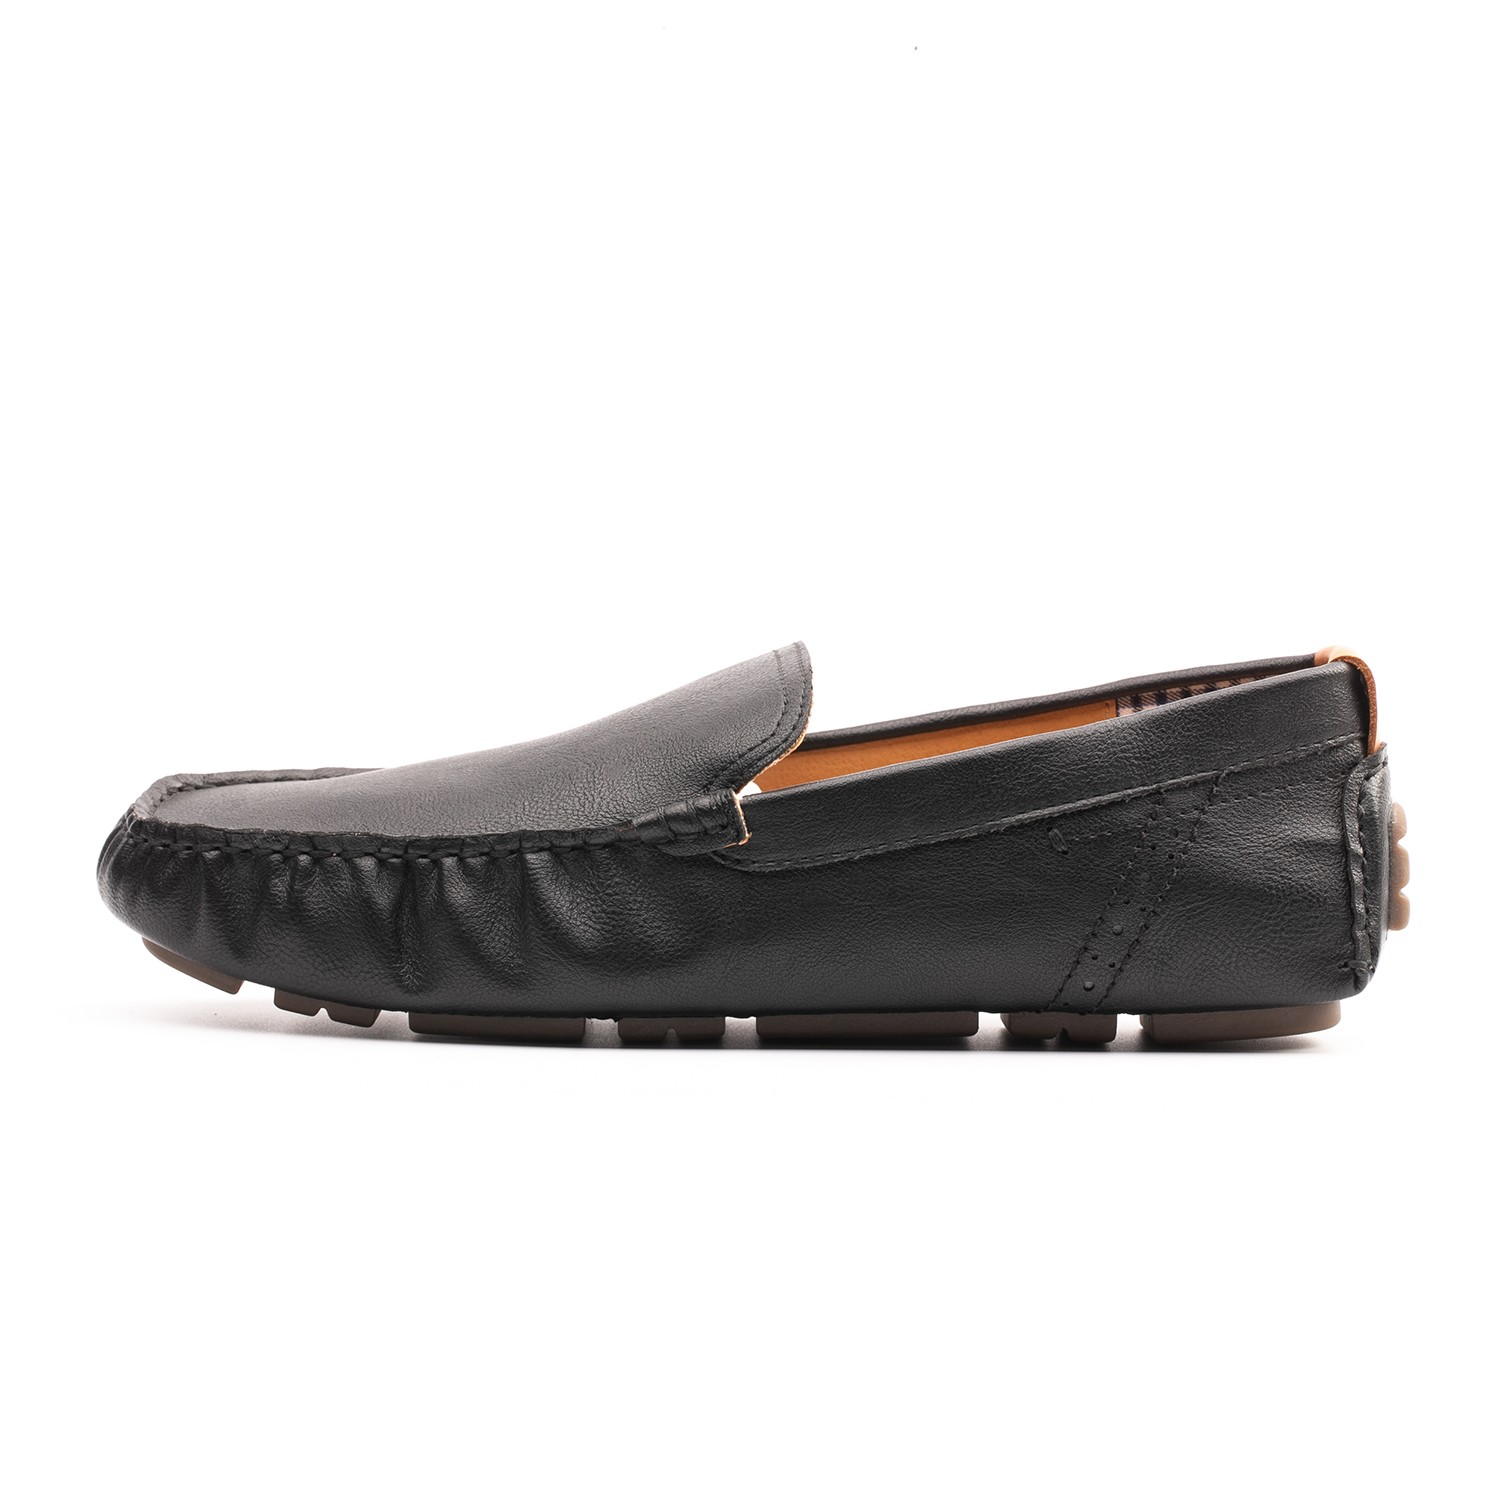 Omine M19001 Men Casual Flat Bean Shoes - Gray US 13